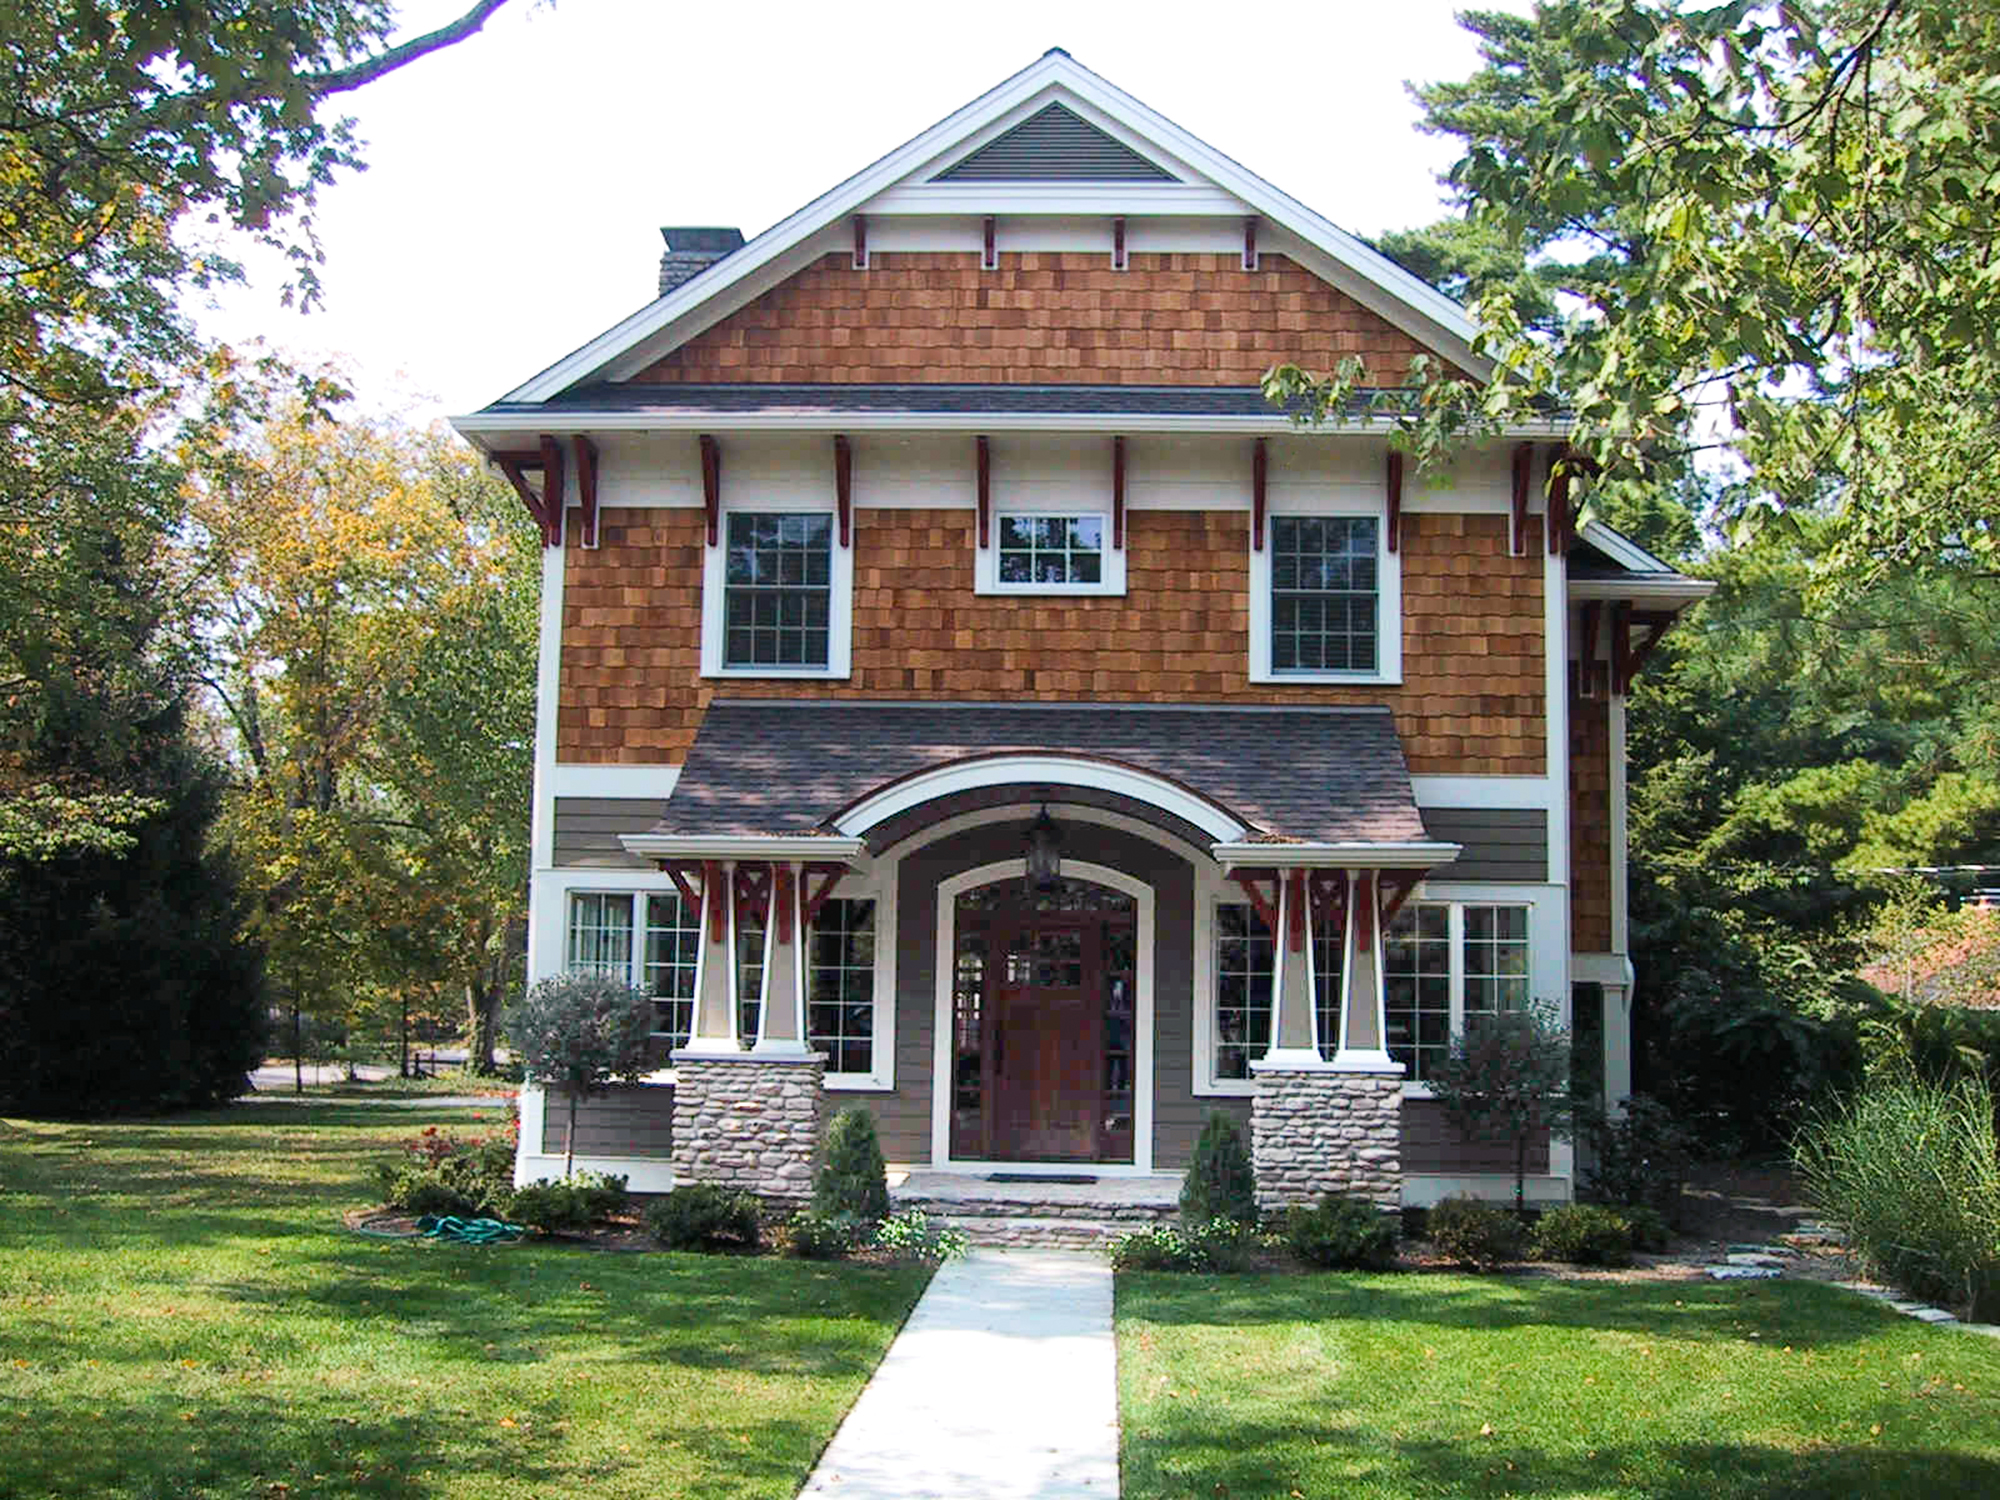 After Terrace Park house converted to two-story home